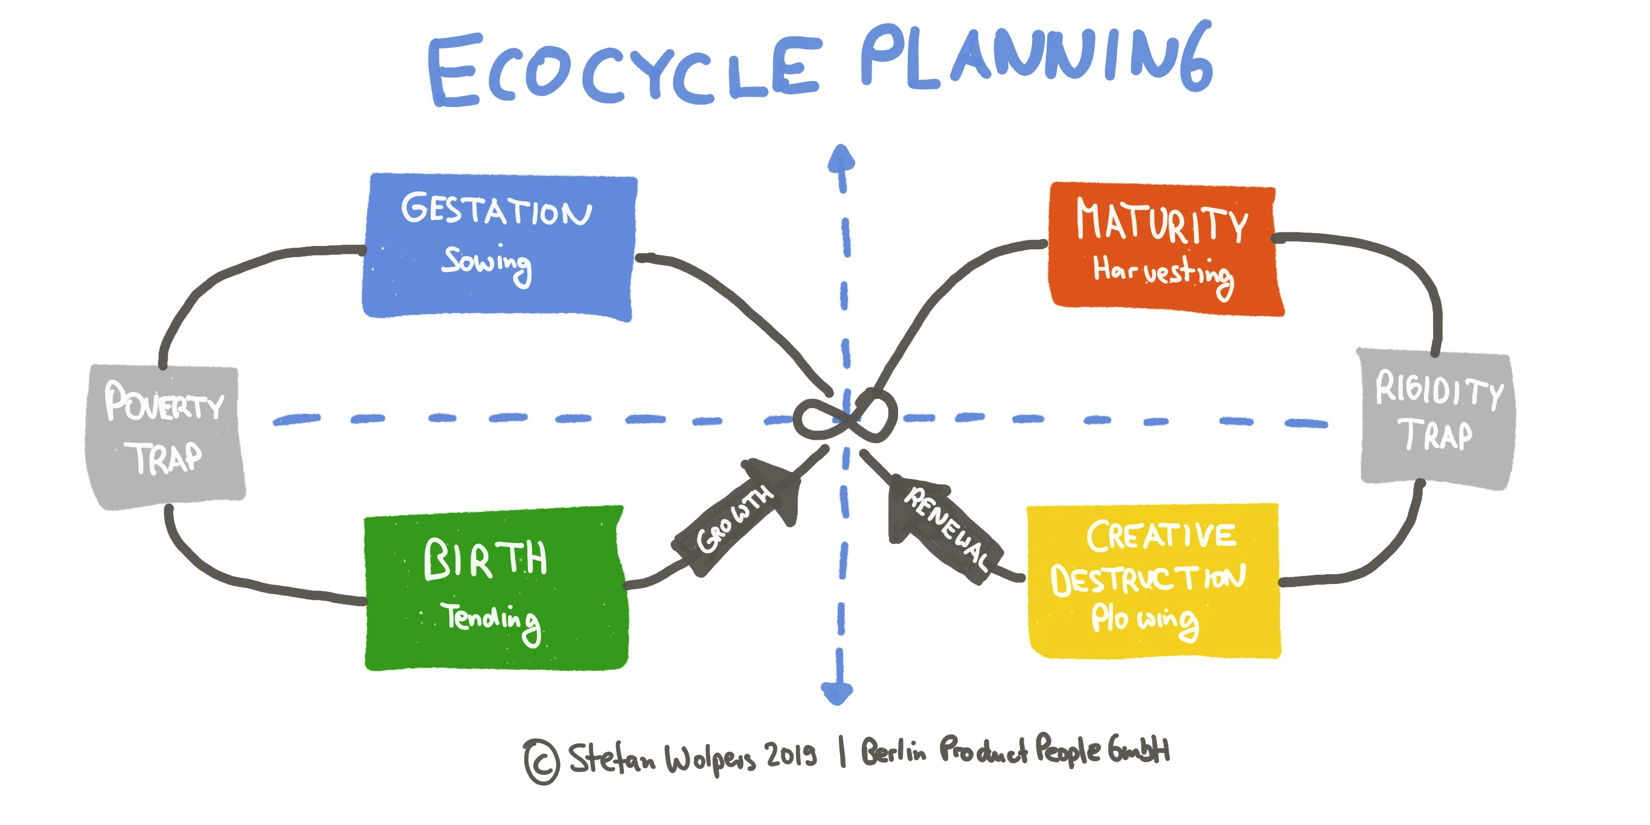 Scrum Master Career 2020 — Using Ecocycle Planning to Identify Opportunities